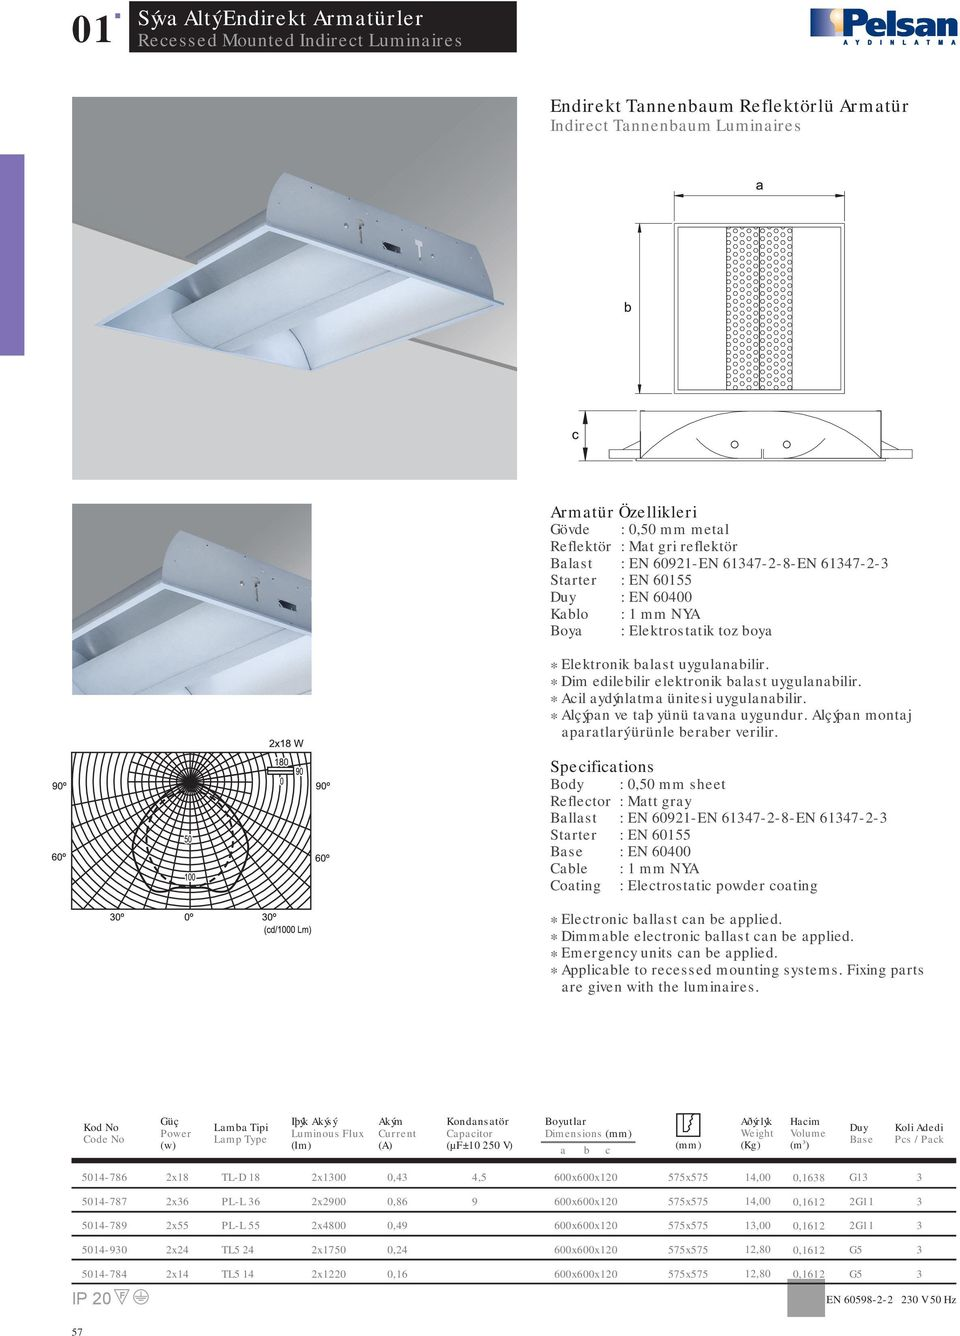 Body : 0,50 mm sheet Reflector : Matt gray Ballast : EN 0921-EN 17-2-8-EN 17-2- : EN 000 Coating : Electrostatic powder coating * Applicable to recessed mounting systems.